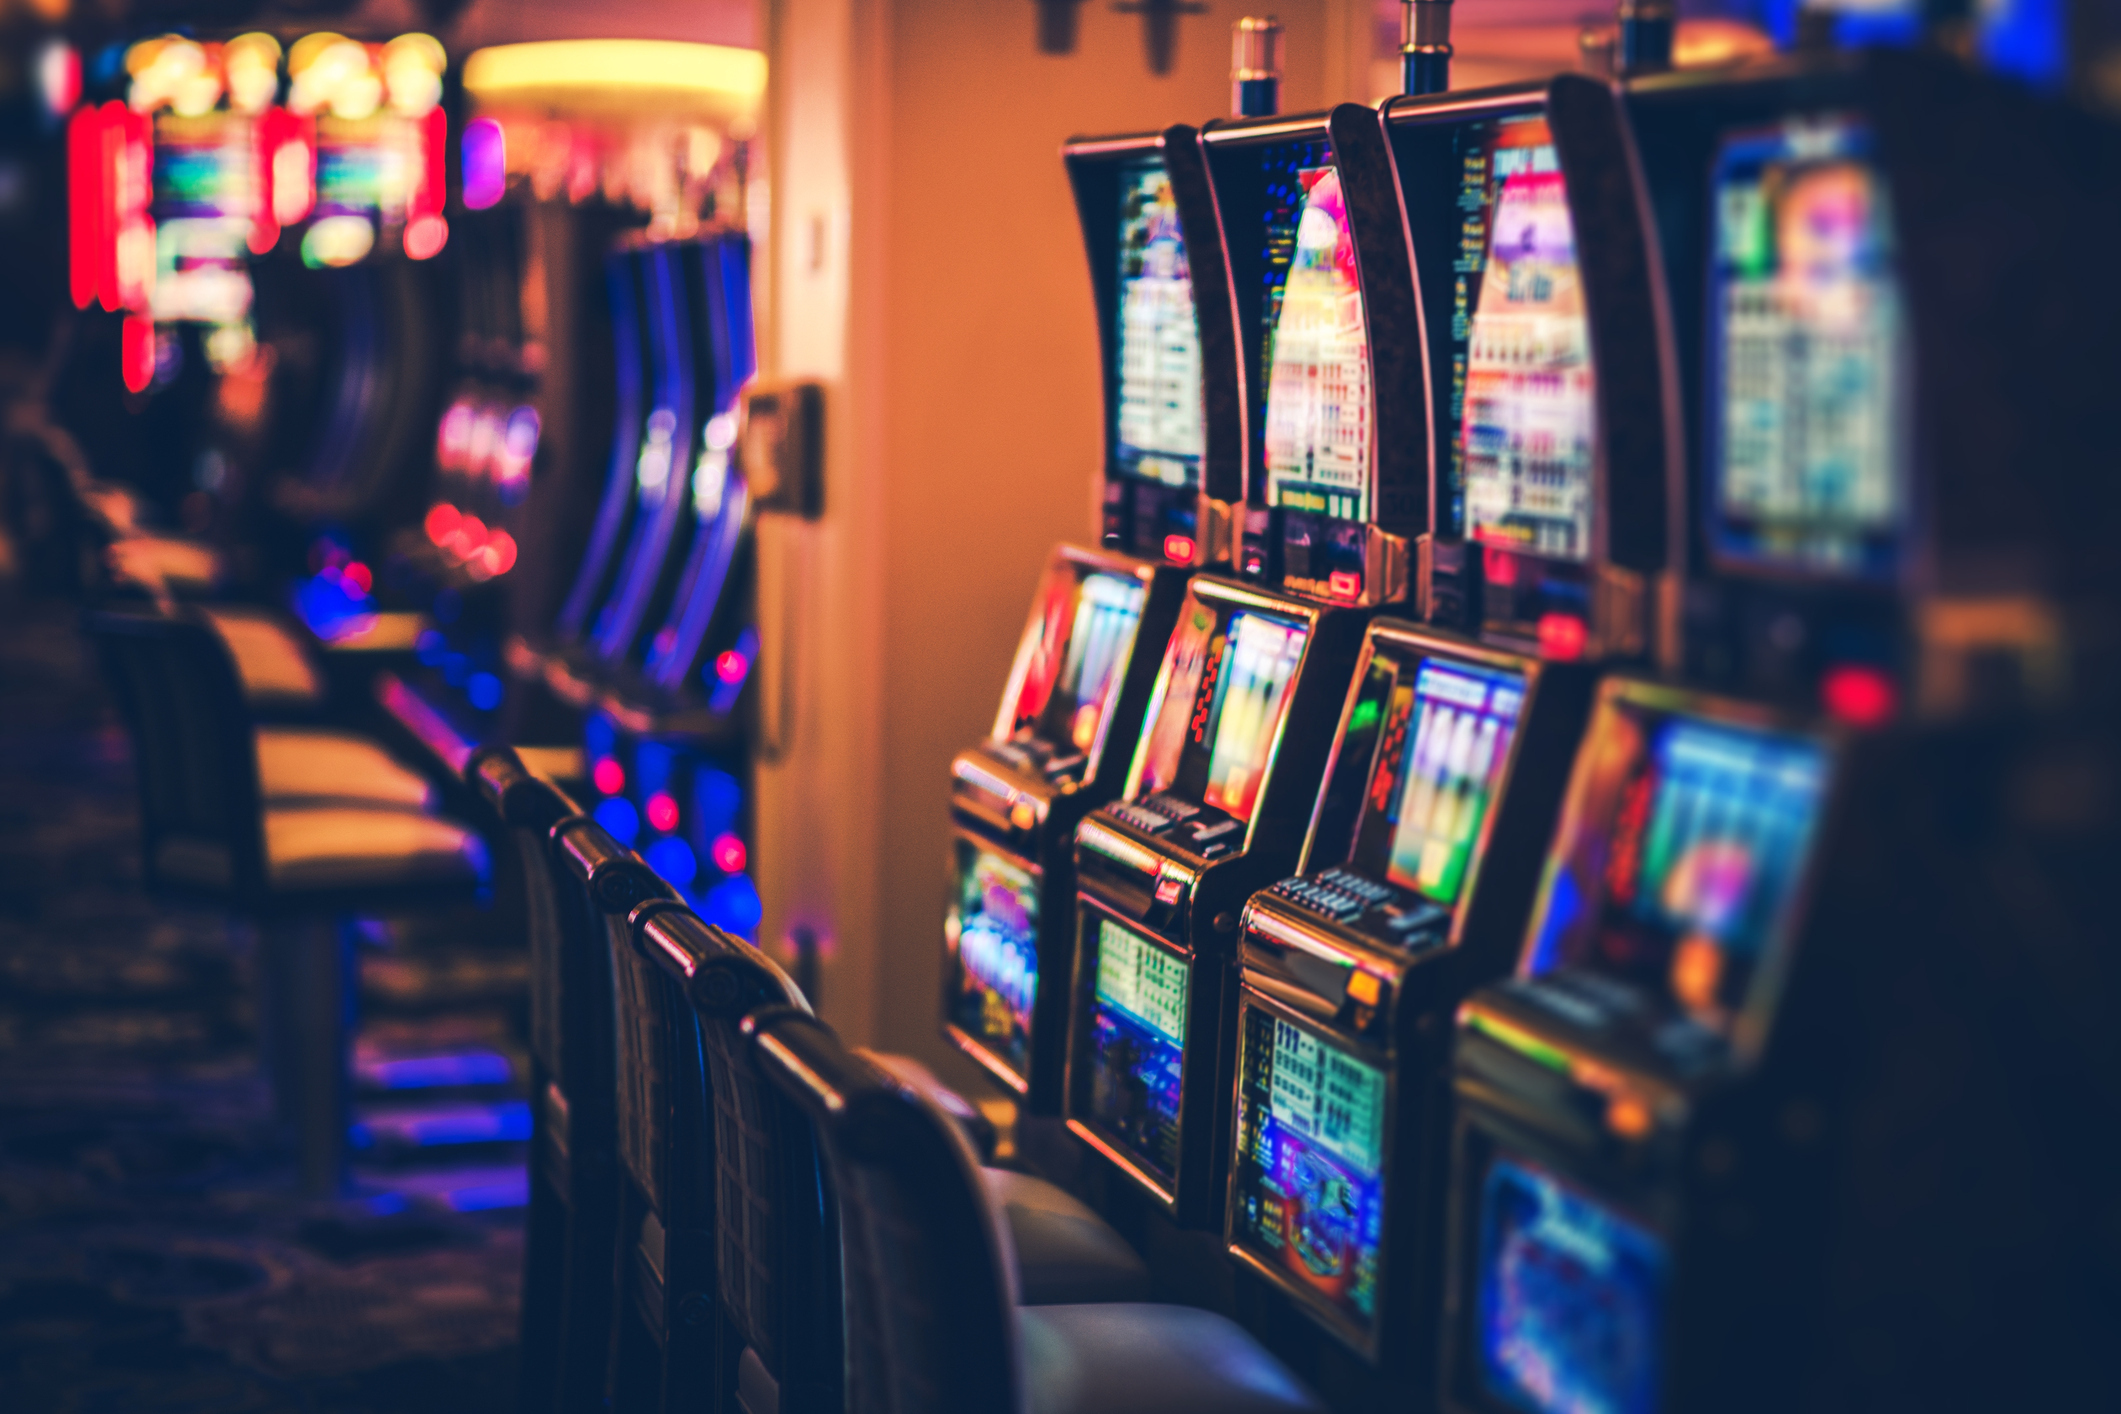 CASINOS will no longer be banned from Torfaen, with any licence applications considered on their own merits.